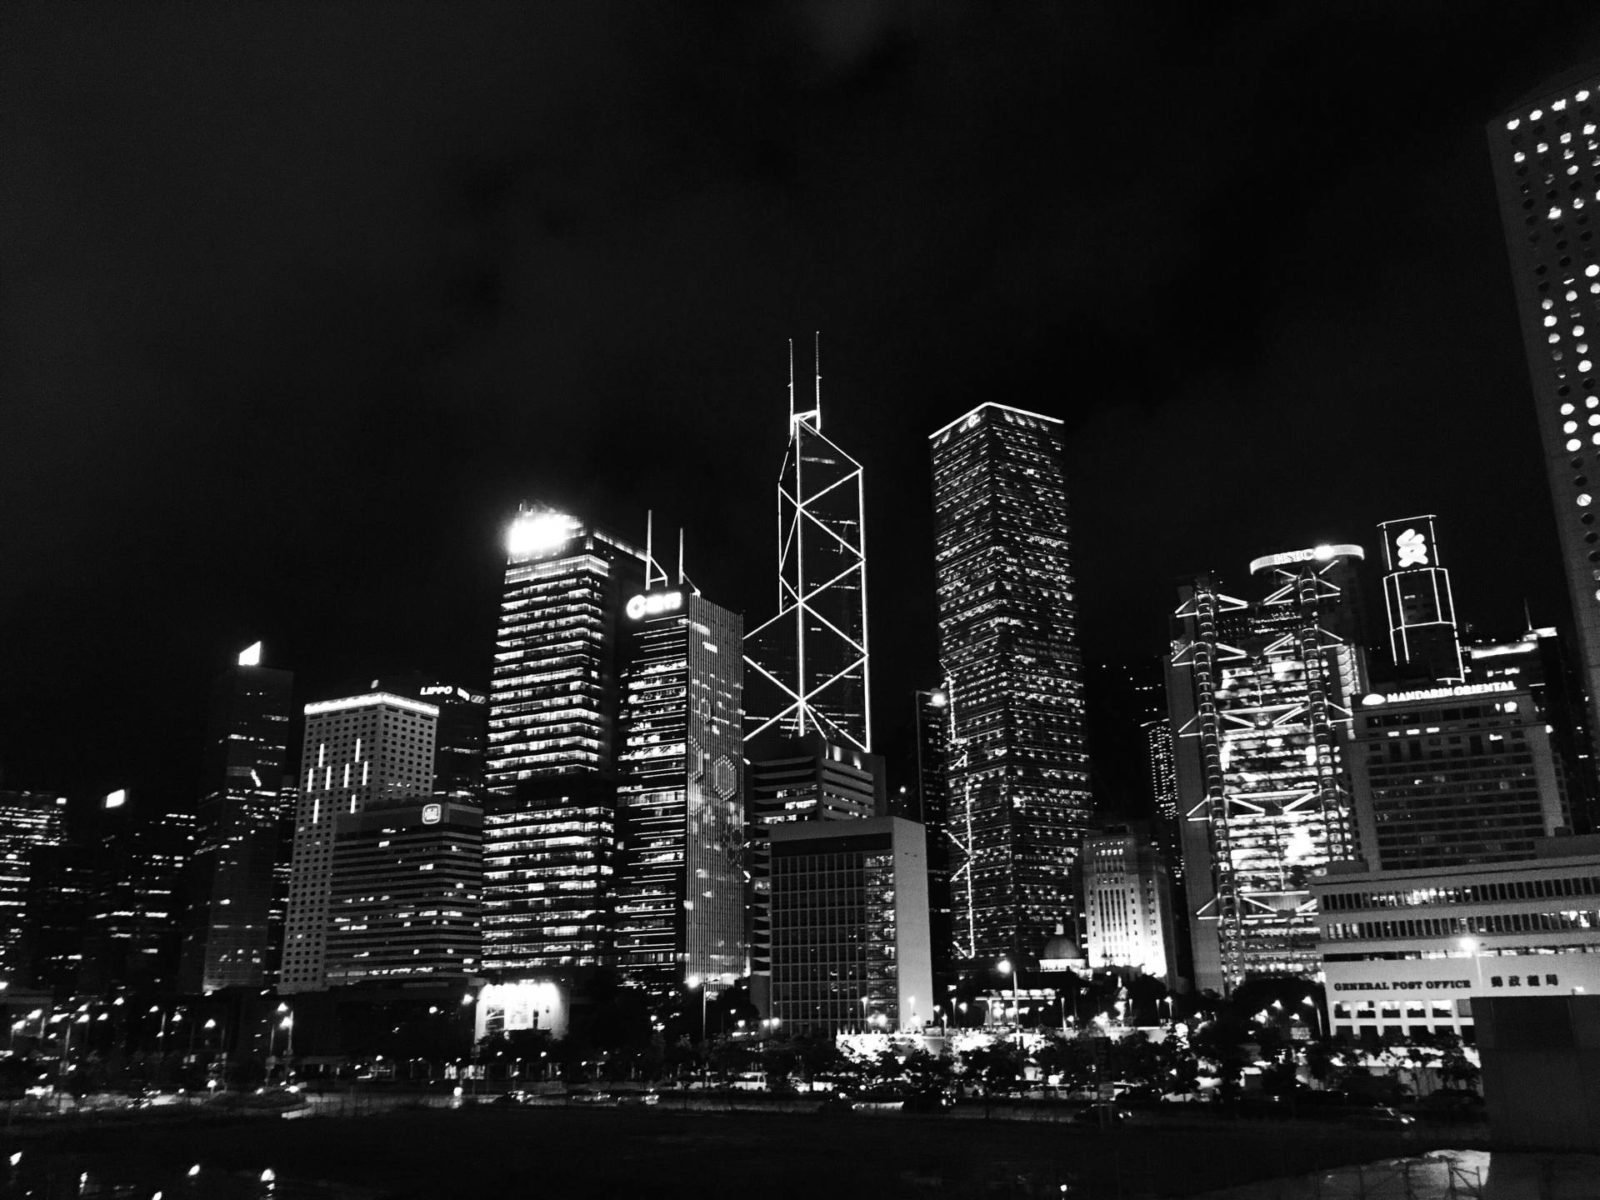 Hong Kong Through The Lens Of Instagram